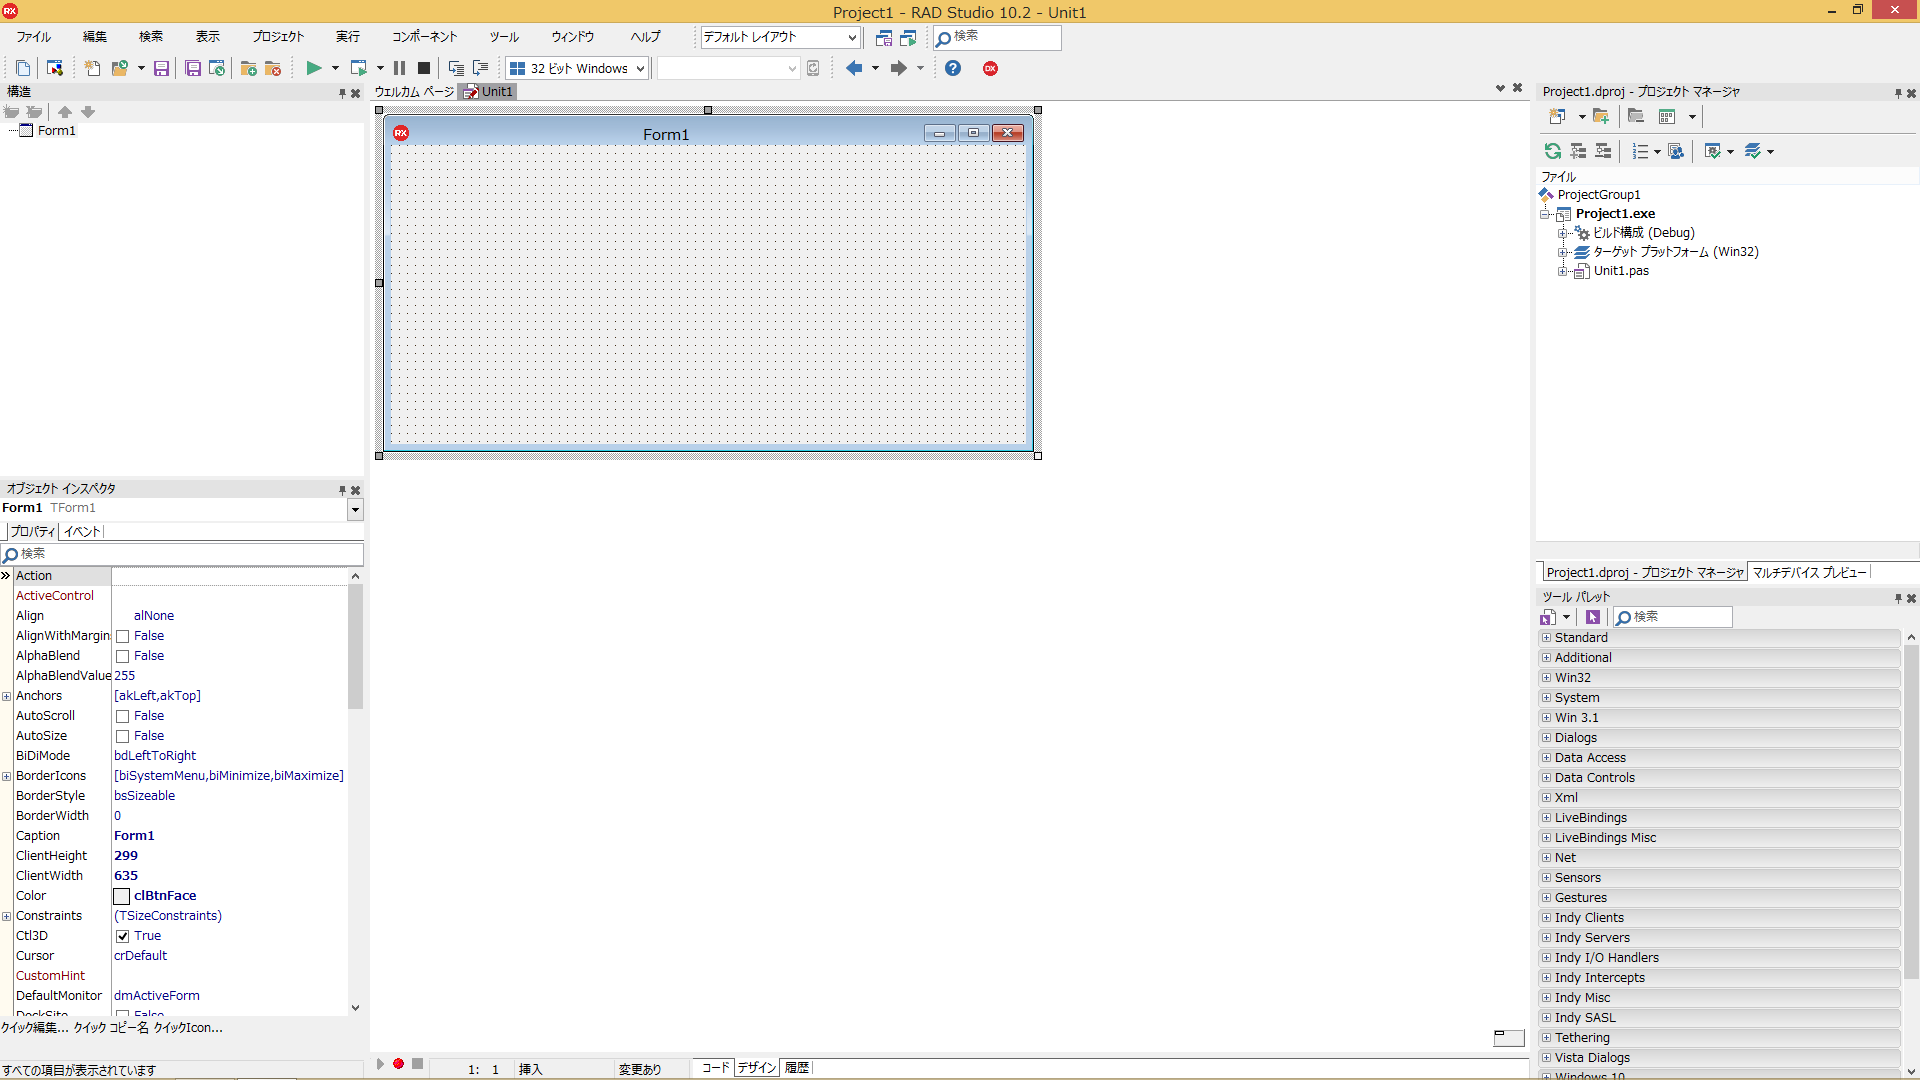 notepad_003.png